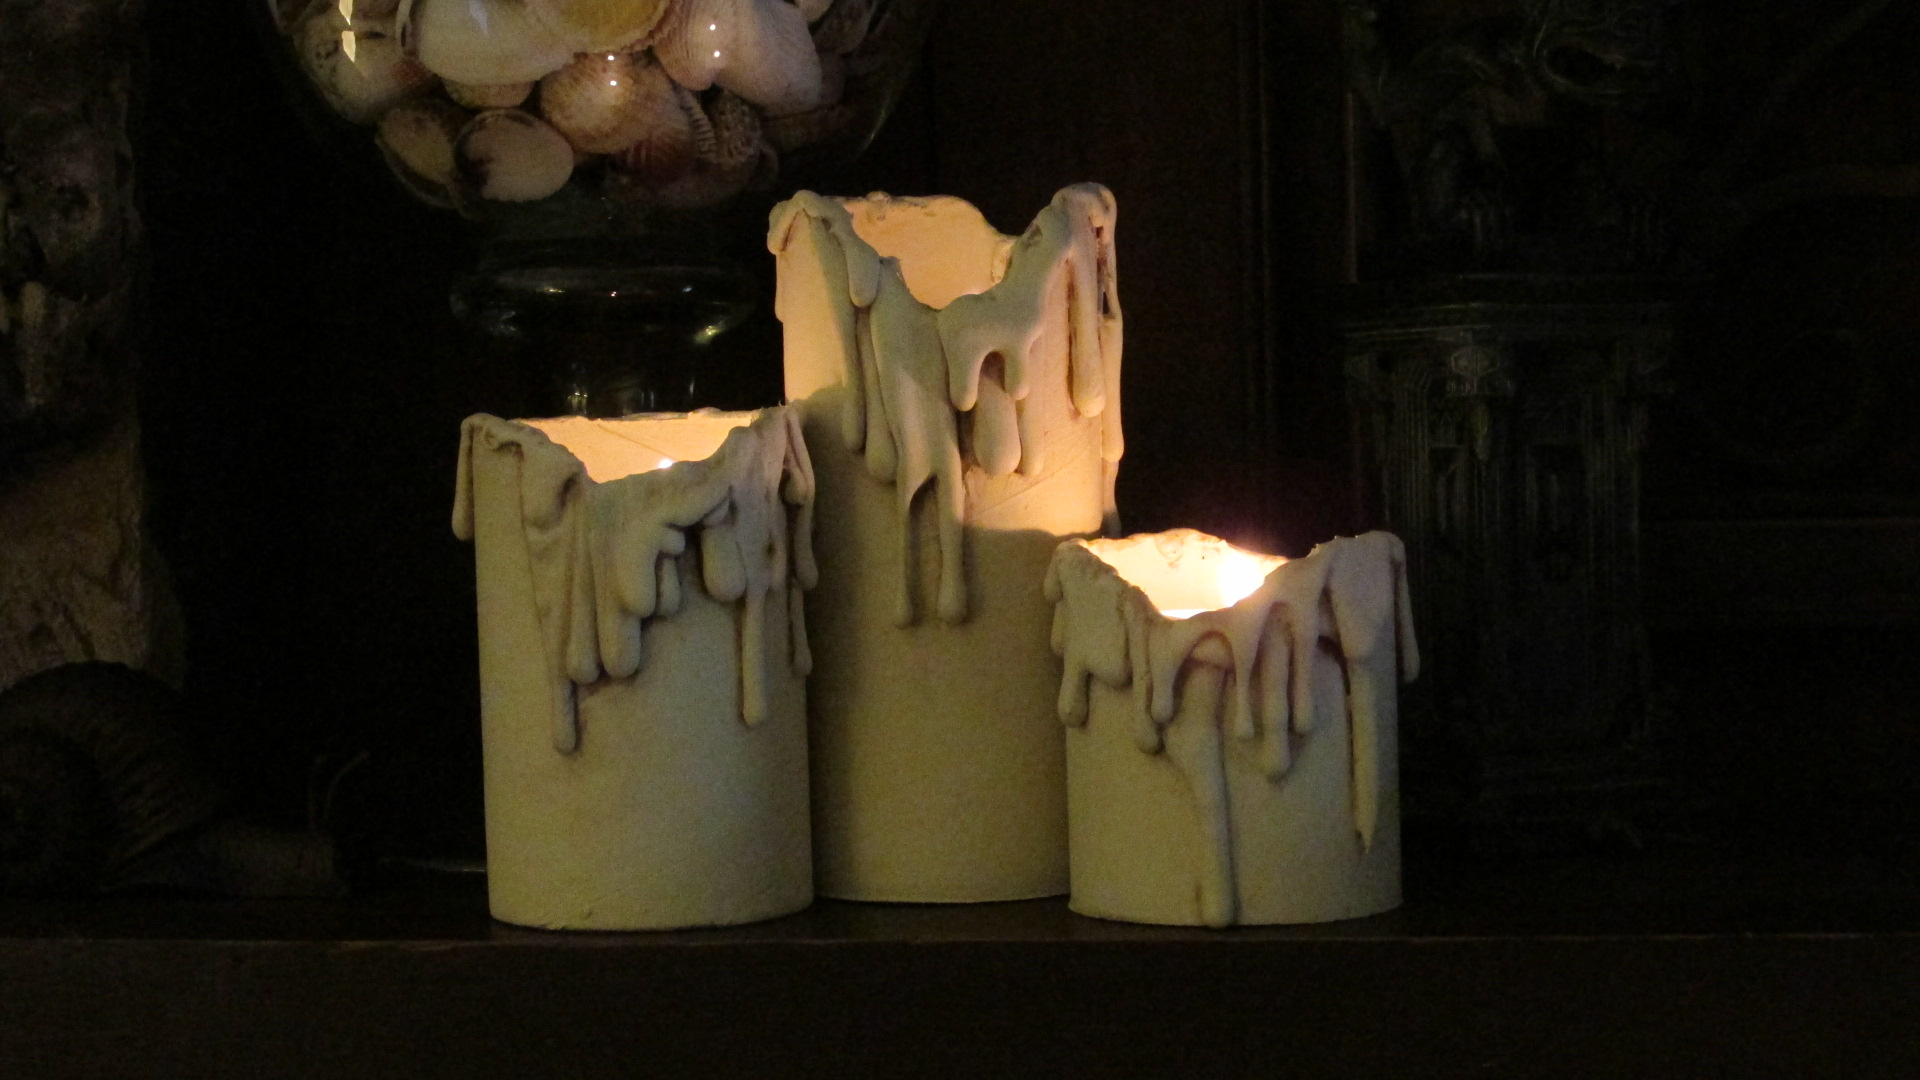 DIY Drippy Candles